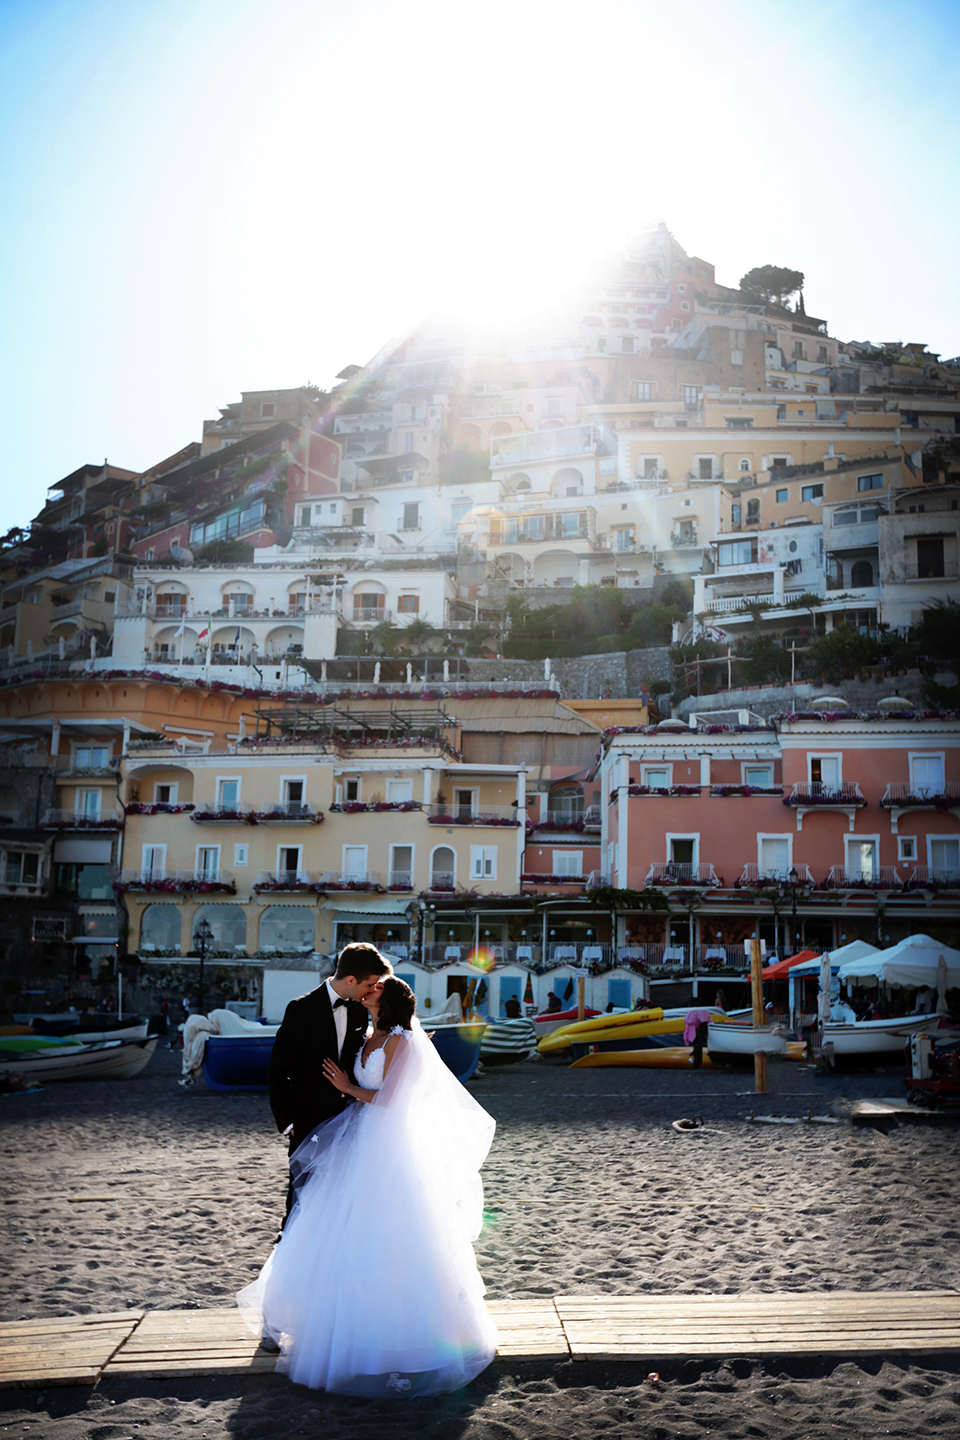 positano-weddin-photographers-italy-wedding-photographers-destination-wedding-photographers-estilo-best-wedding-photographers-in-the-world-casper-bosman-wedding-gown-wedding-style-stylish-modern-wedding-photography-039.jpg